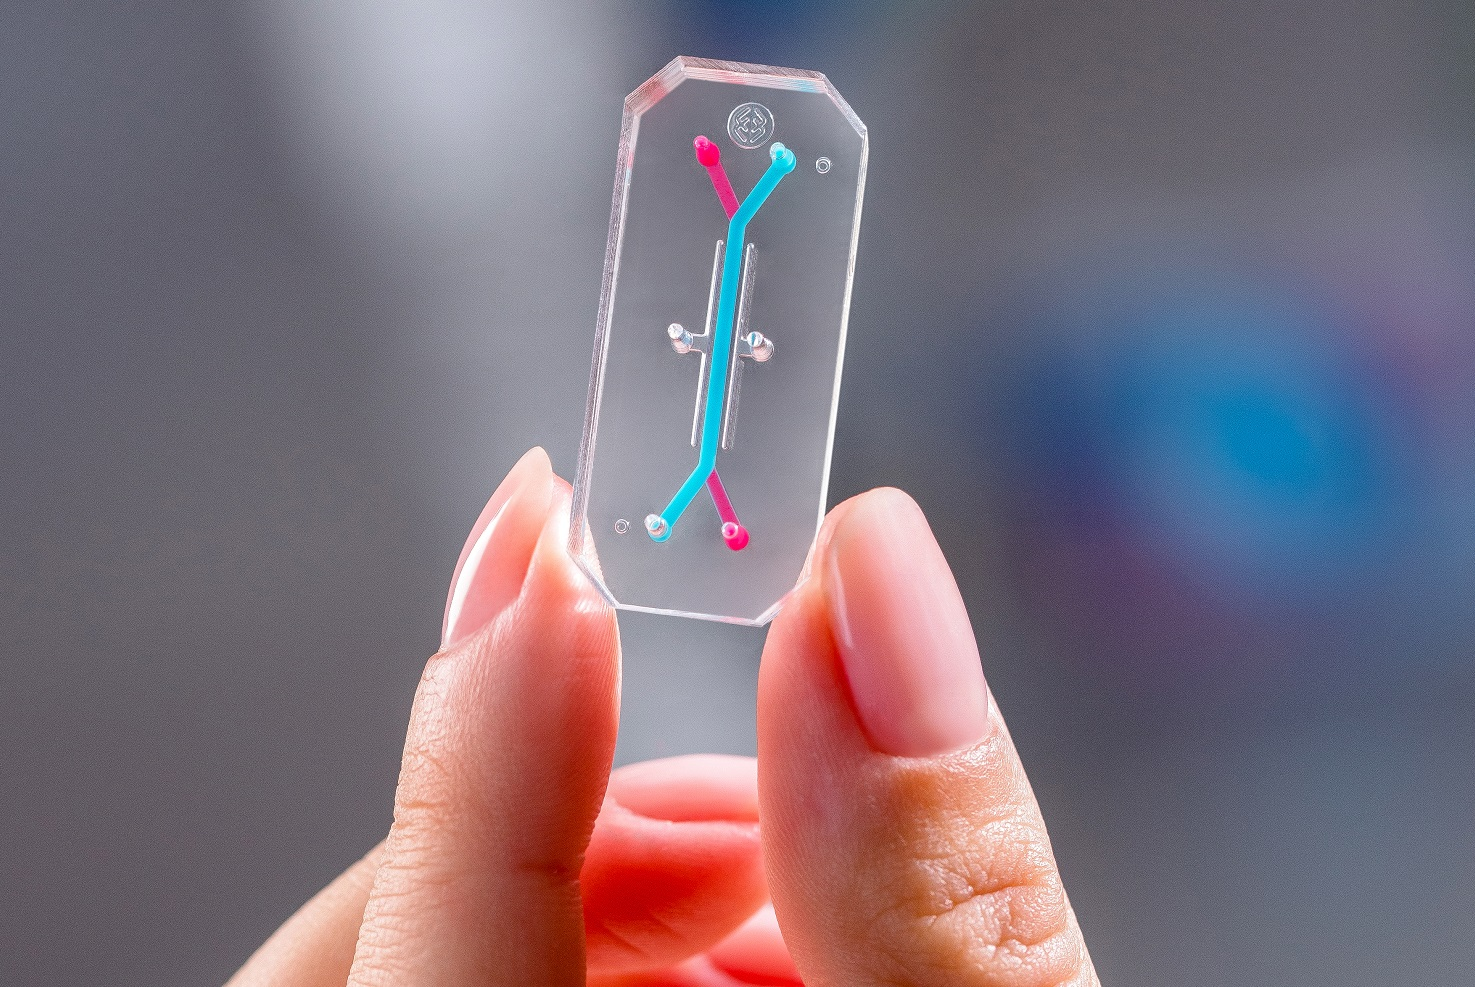 Emulate organ on a chip